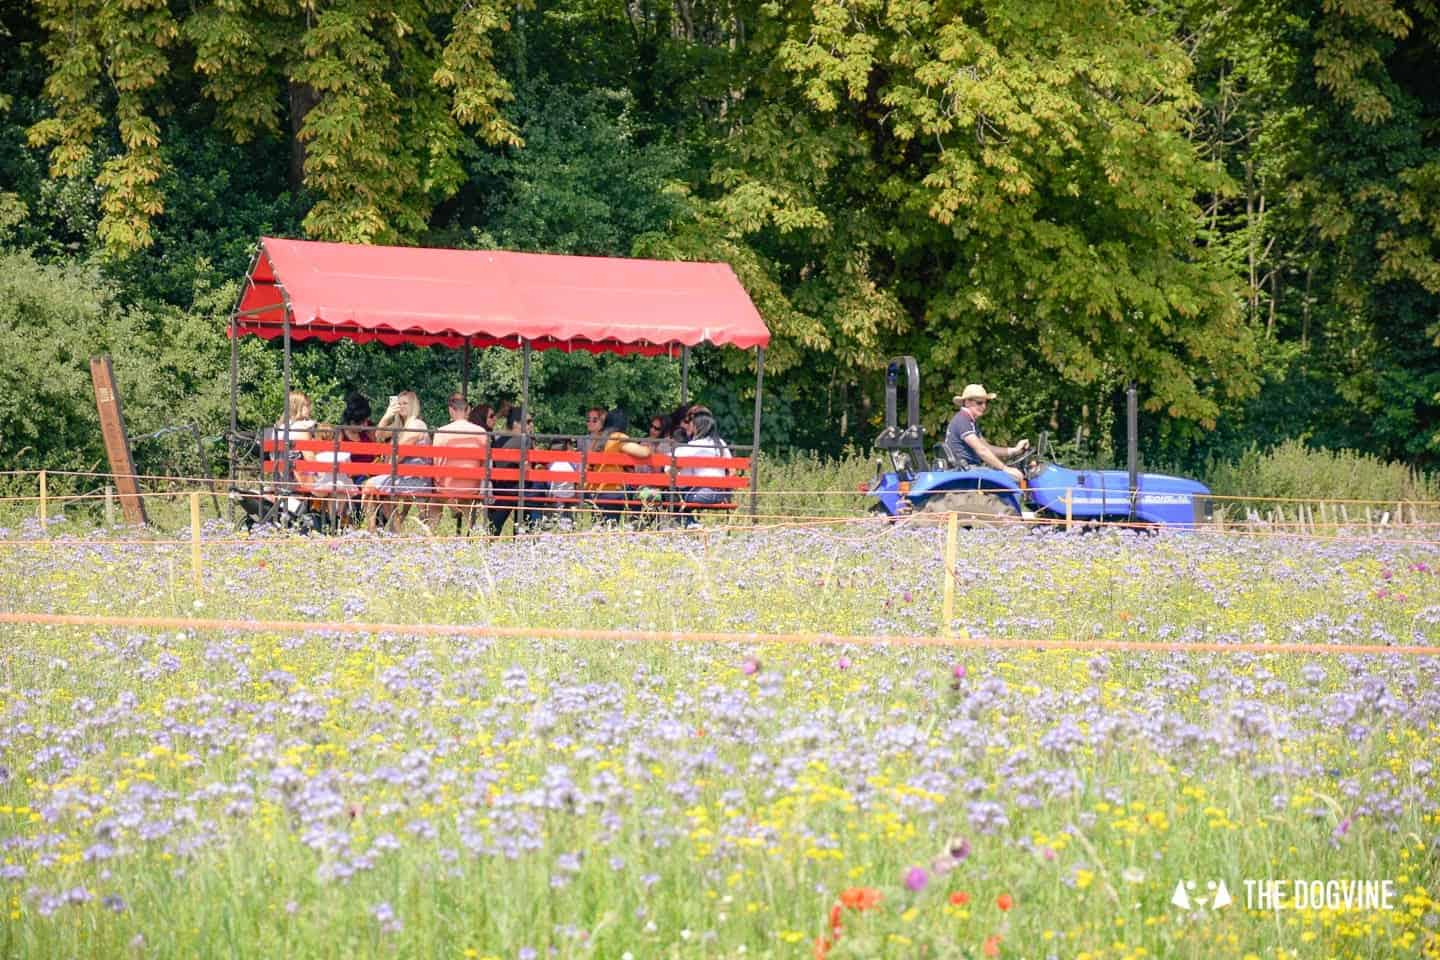 Dog-friendly Mayfield Lavender Farm - Tractor Tour